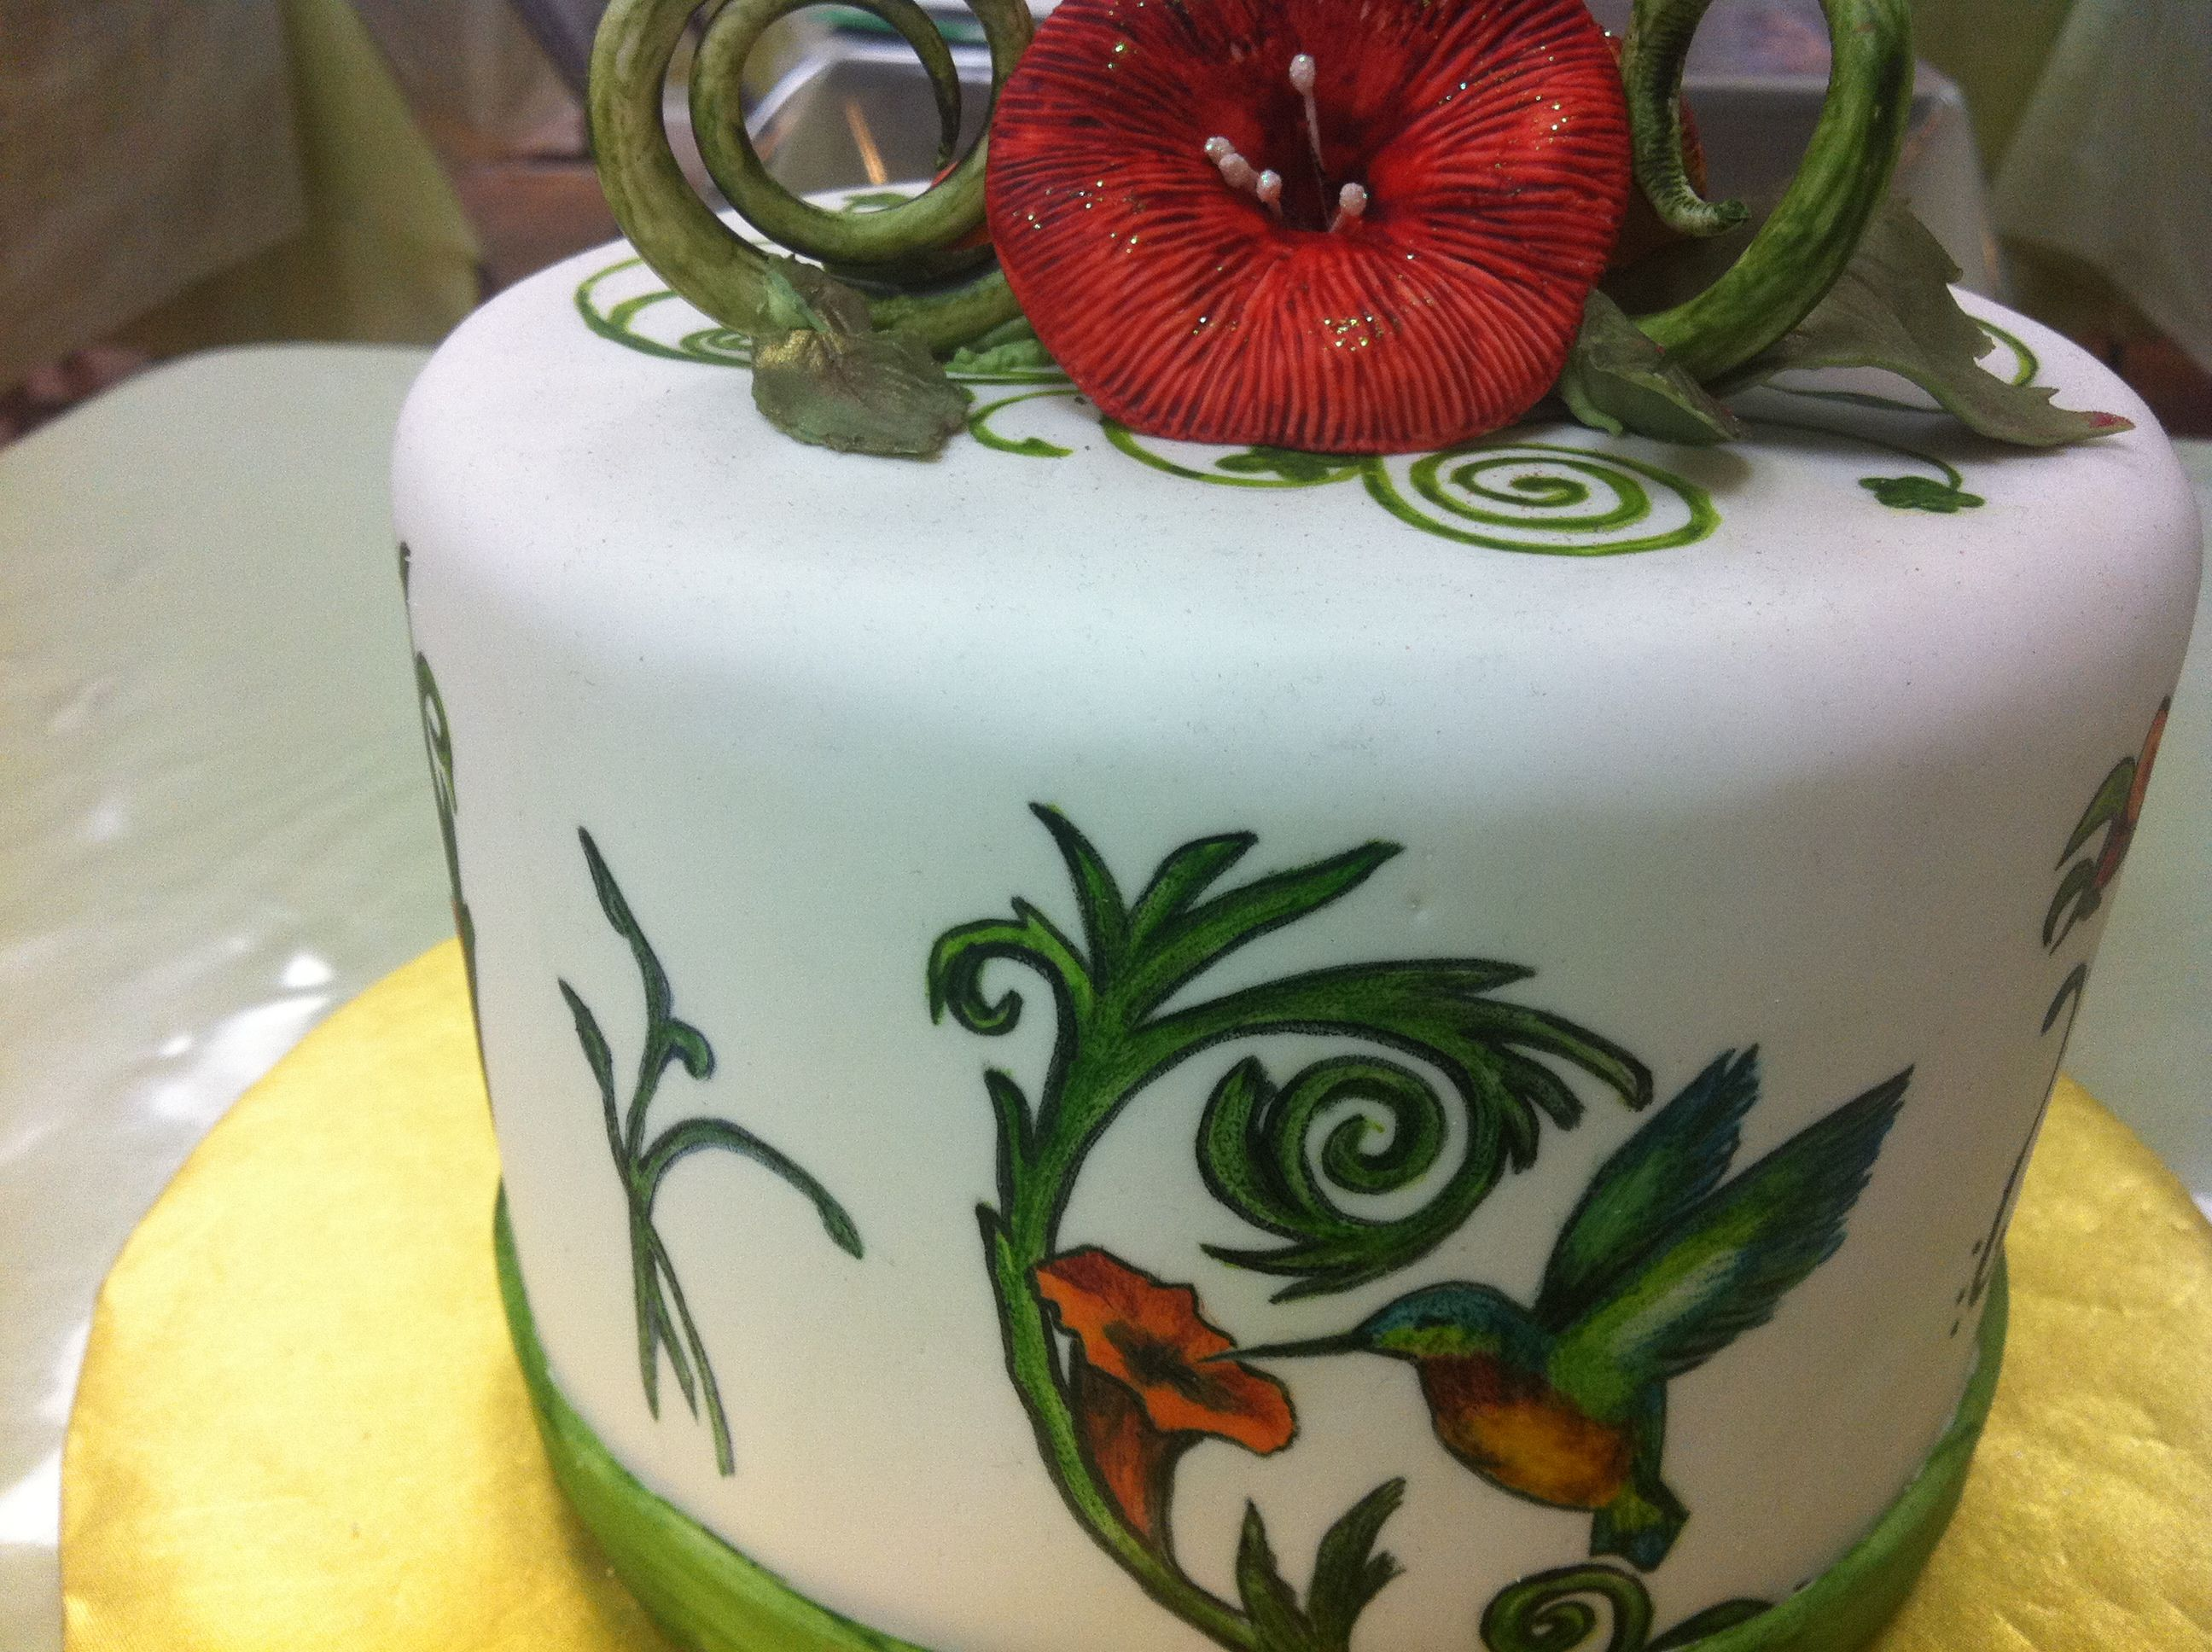 Cake Decoration New : Painting on Cake Fondant New Cake Decorating Class, Cake ...